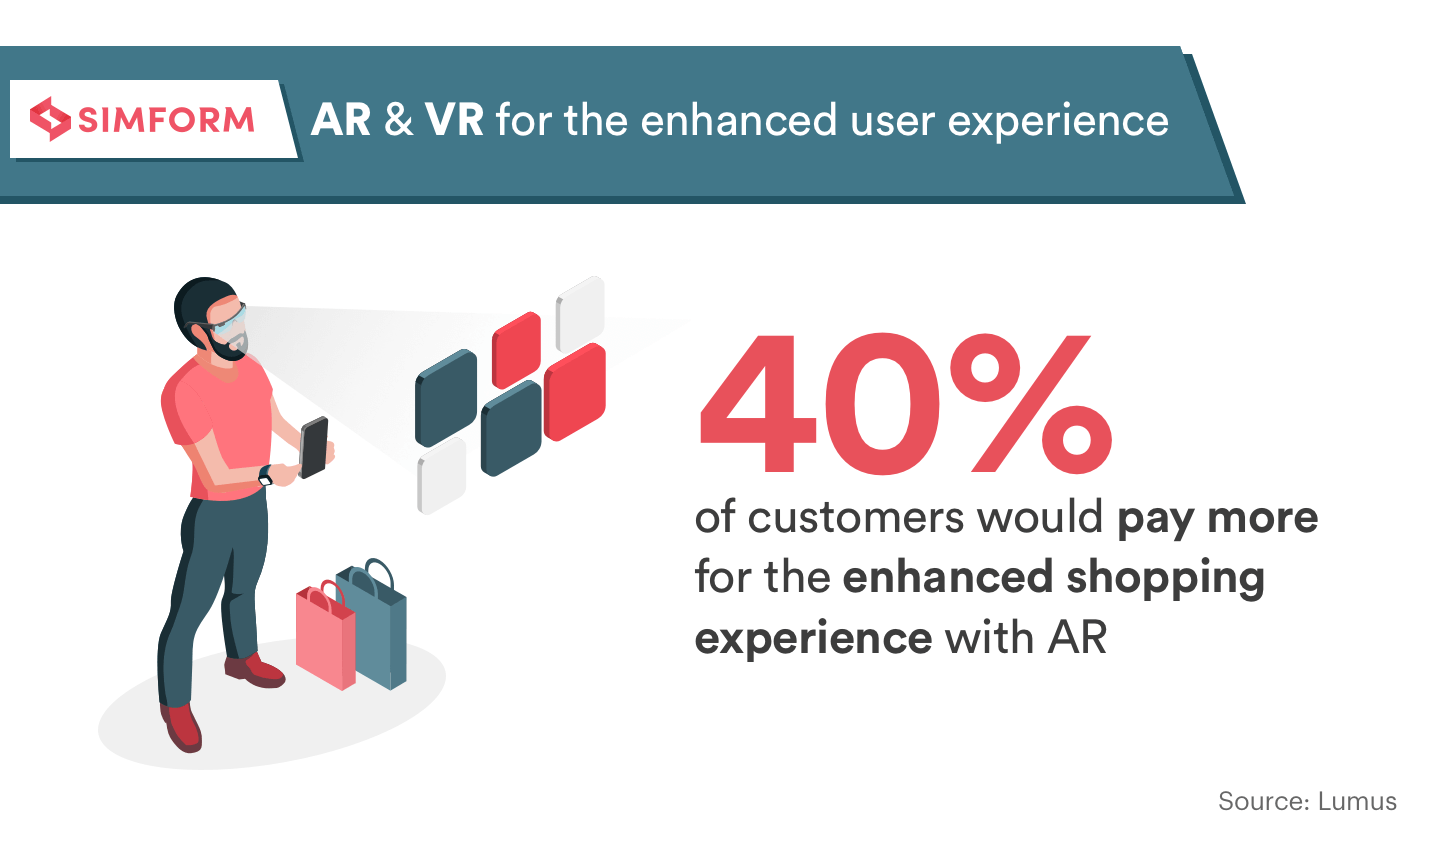 AR and VR's immersive user experience increases product value